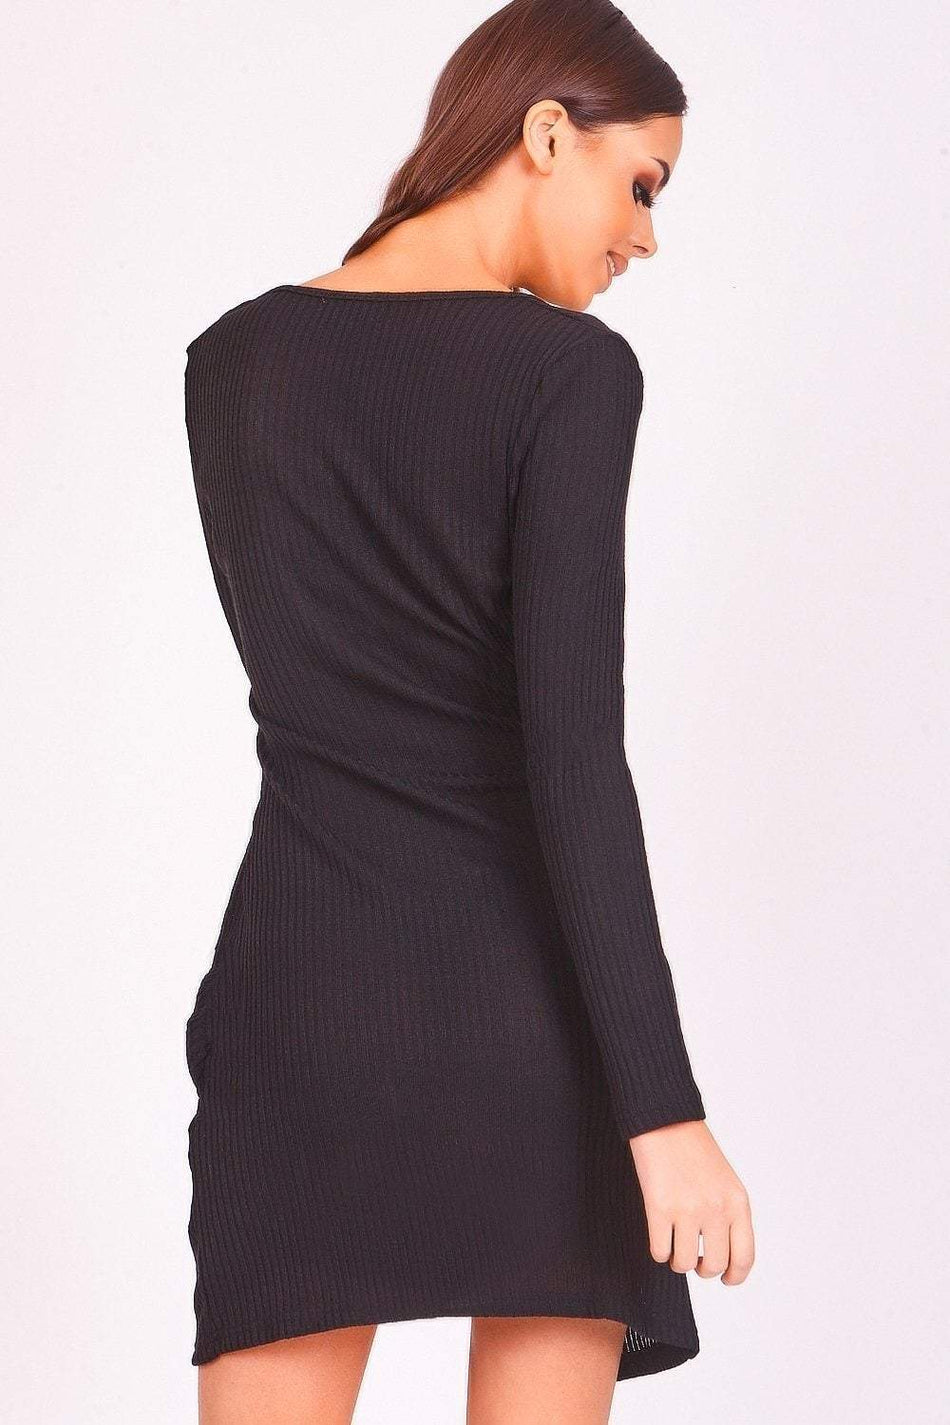 Black Wrap Front Ribbed Dress - KATCH ME